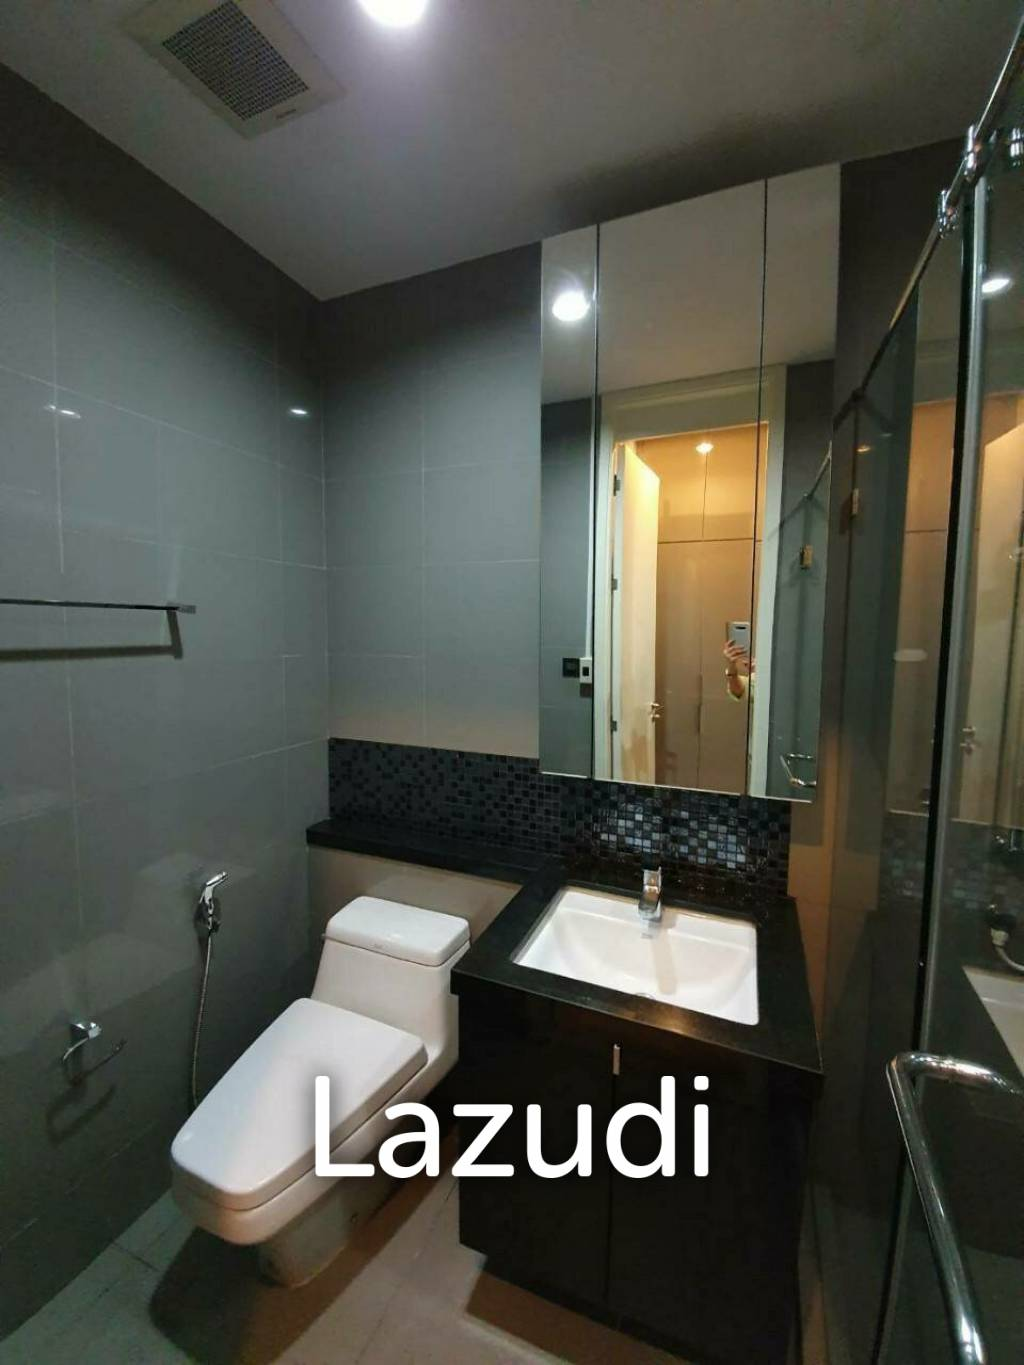 Fully Furnished Condo for sale 'M Ladprao':  36.88 sqm, 1 Bed room, 1 Bath room